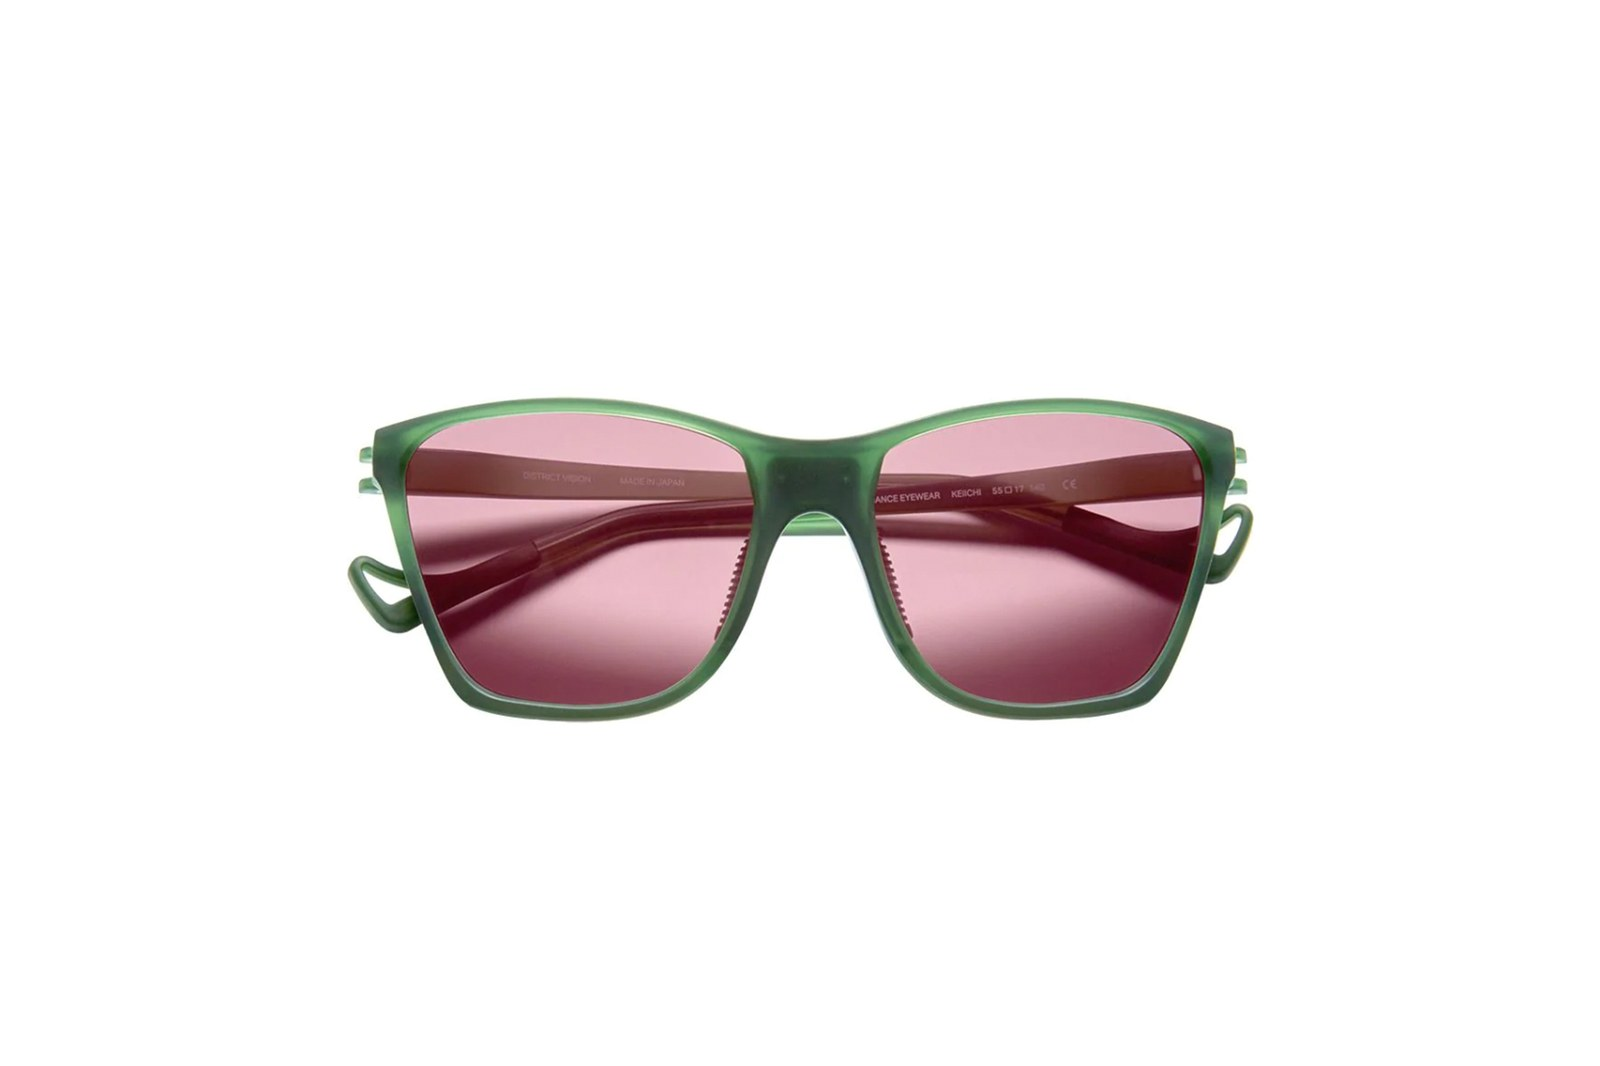 Kính District Vision green Keiichi District Sky G15 sunglasses